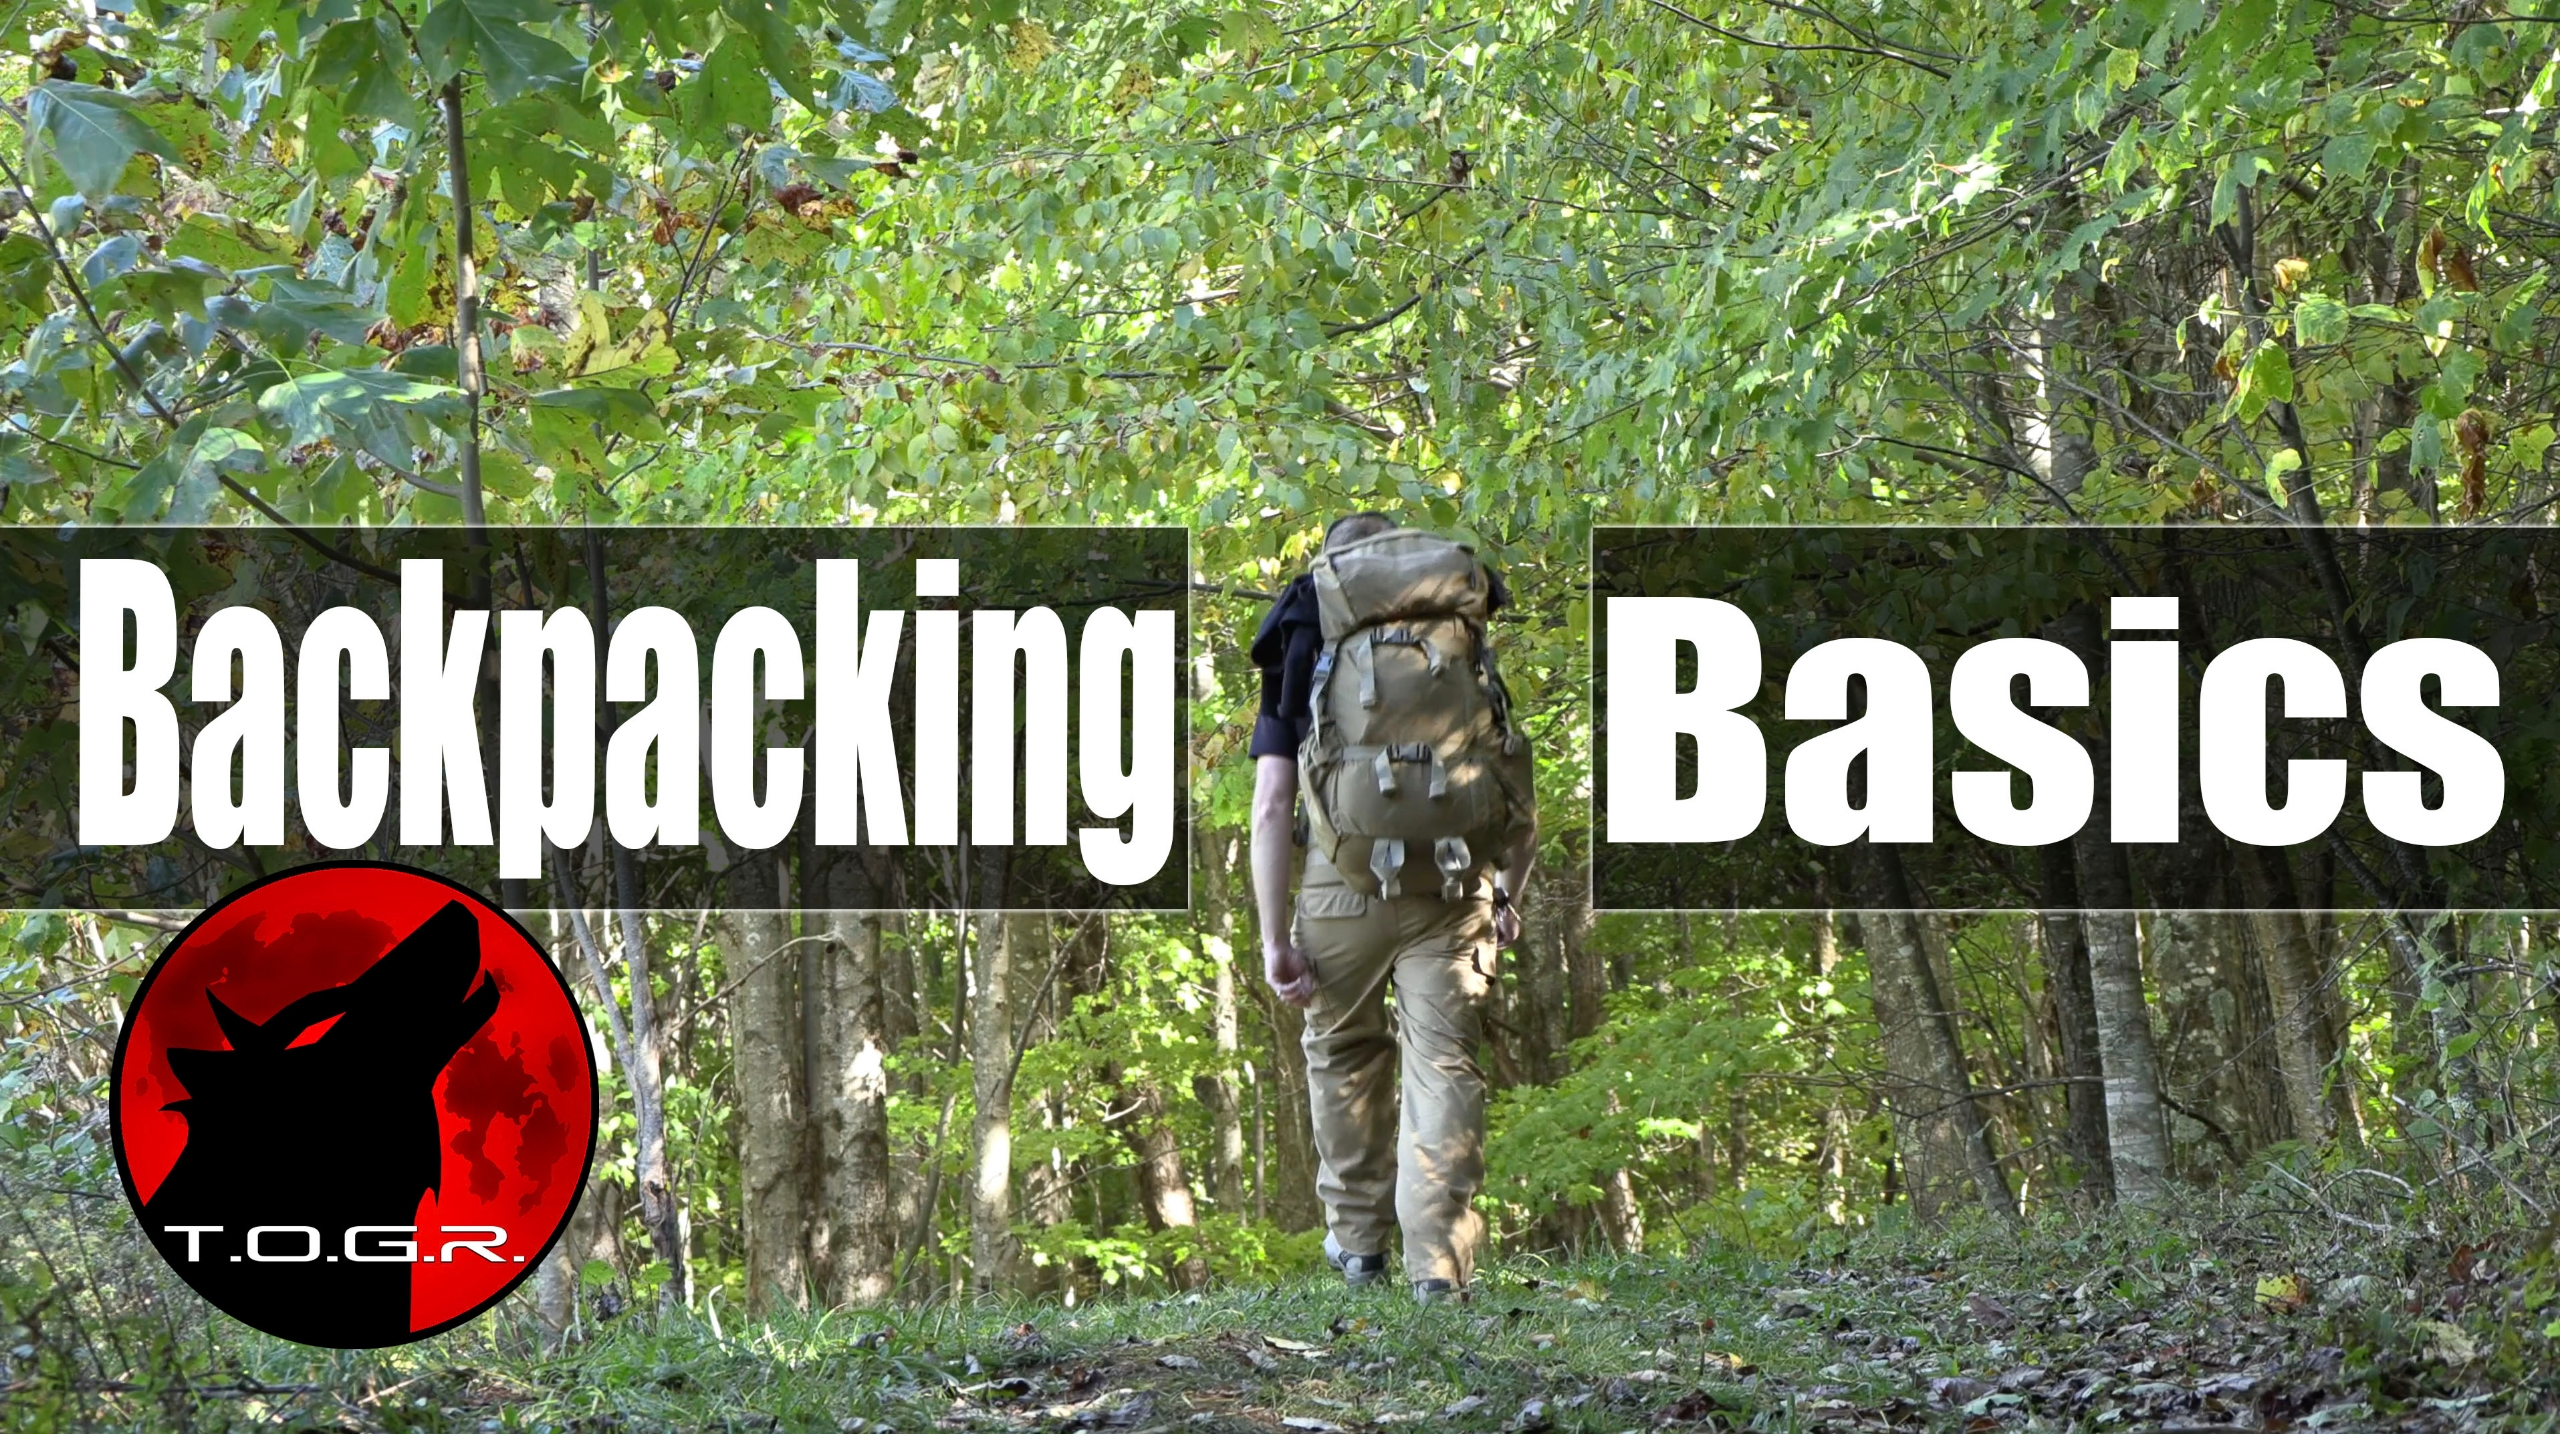 heard term Backpacking' episode - theoutdoorgearreview | ello